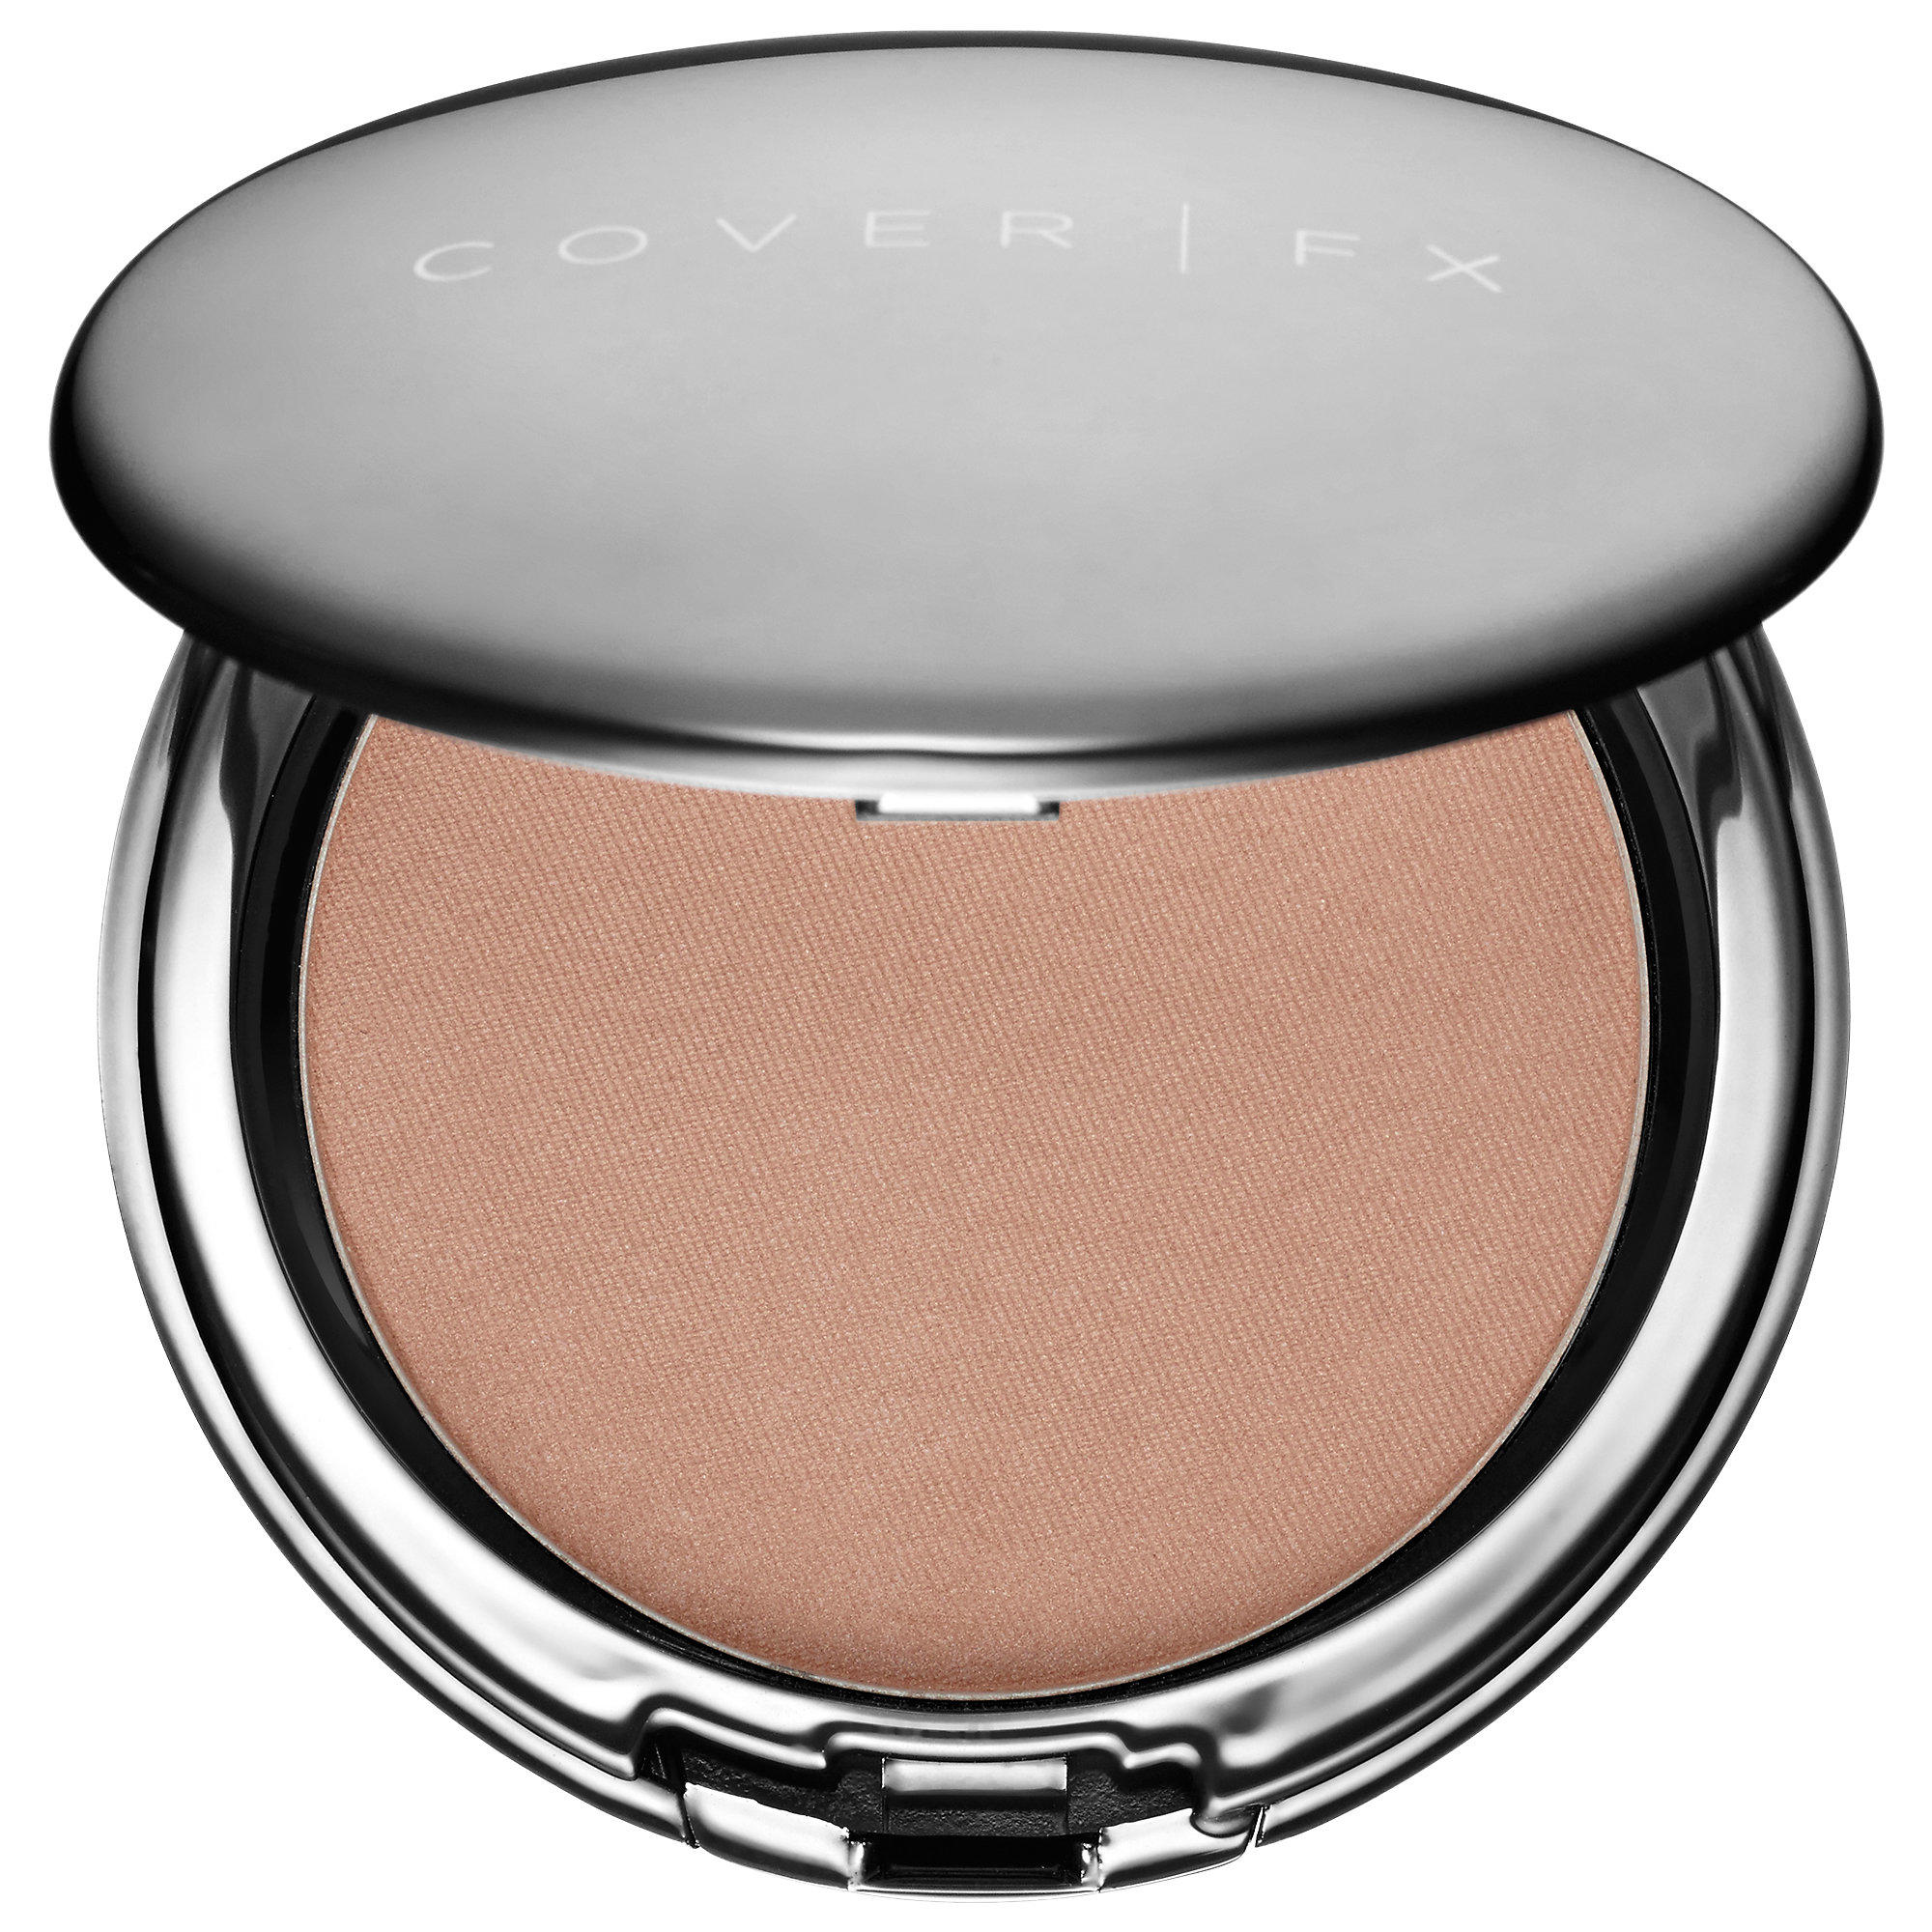 COVER FX The Perfect Light Highlighting Powder Sunlight